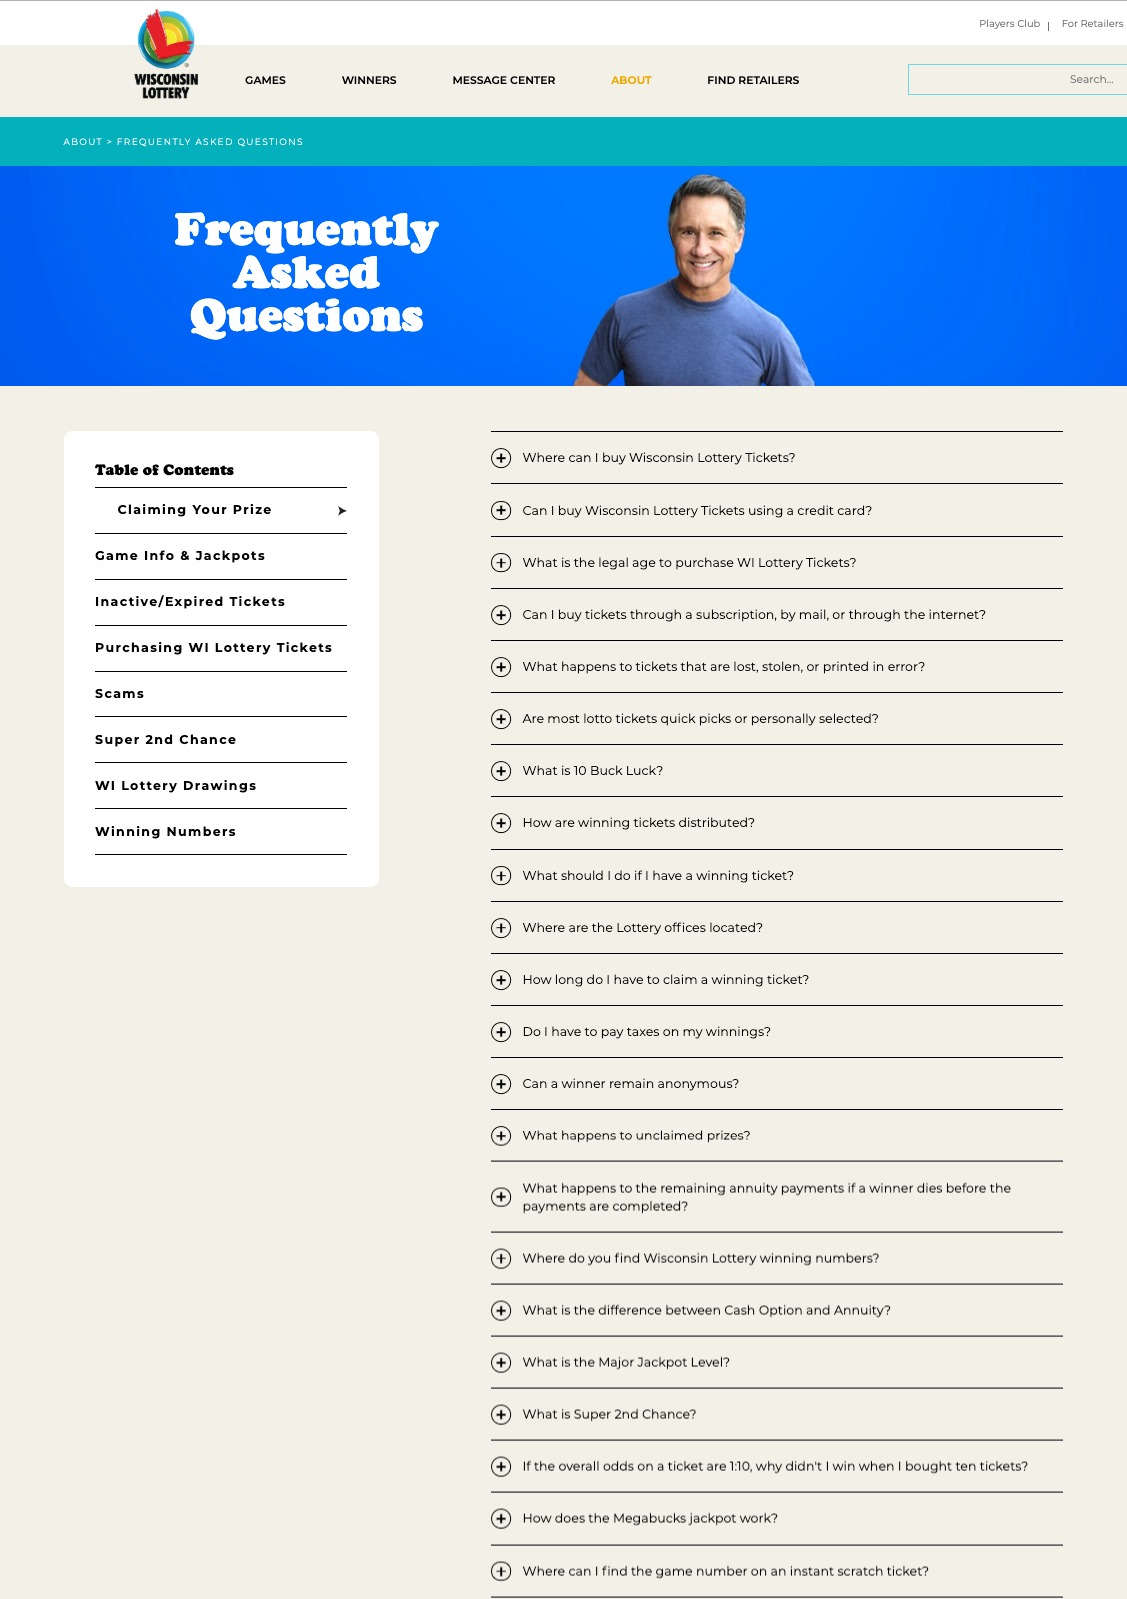 Wisconsin Lottery website FAQ page